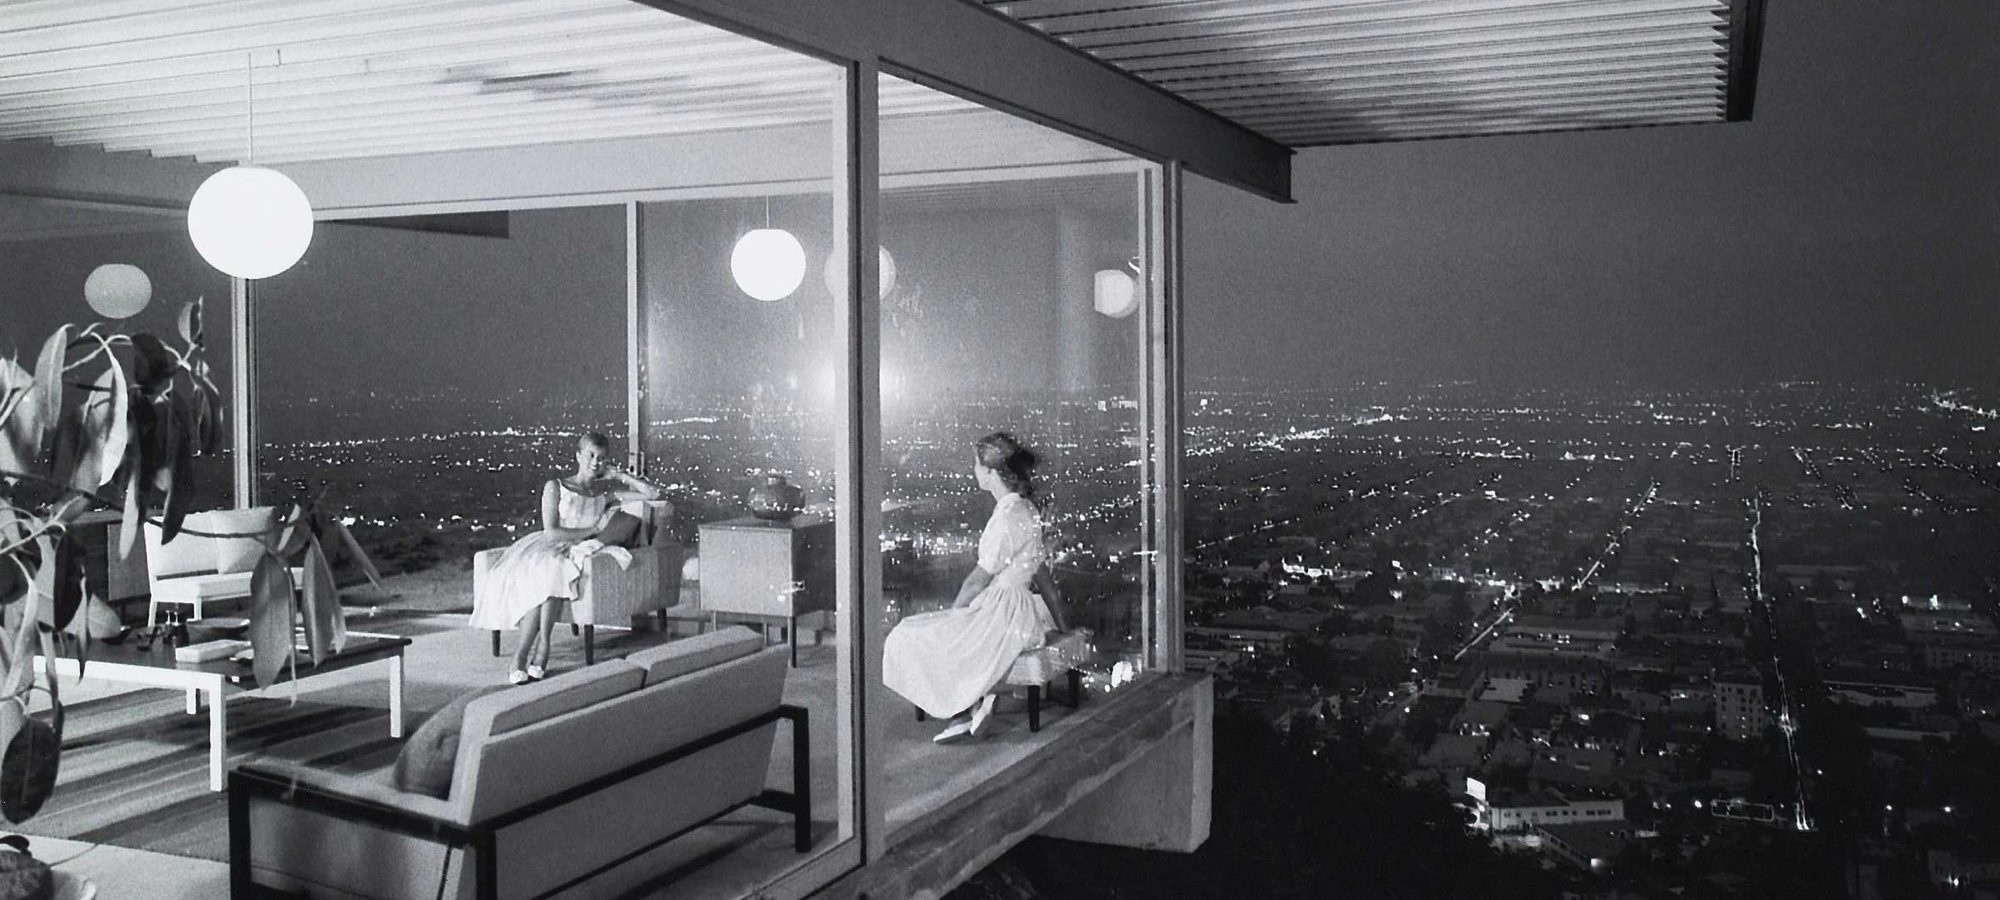 The famous Julius Schulman photograph, taken in 1960, of the Stahl House floating above the Los Angeles Basin. Image via the Getty Research Trust.